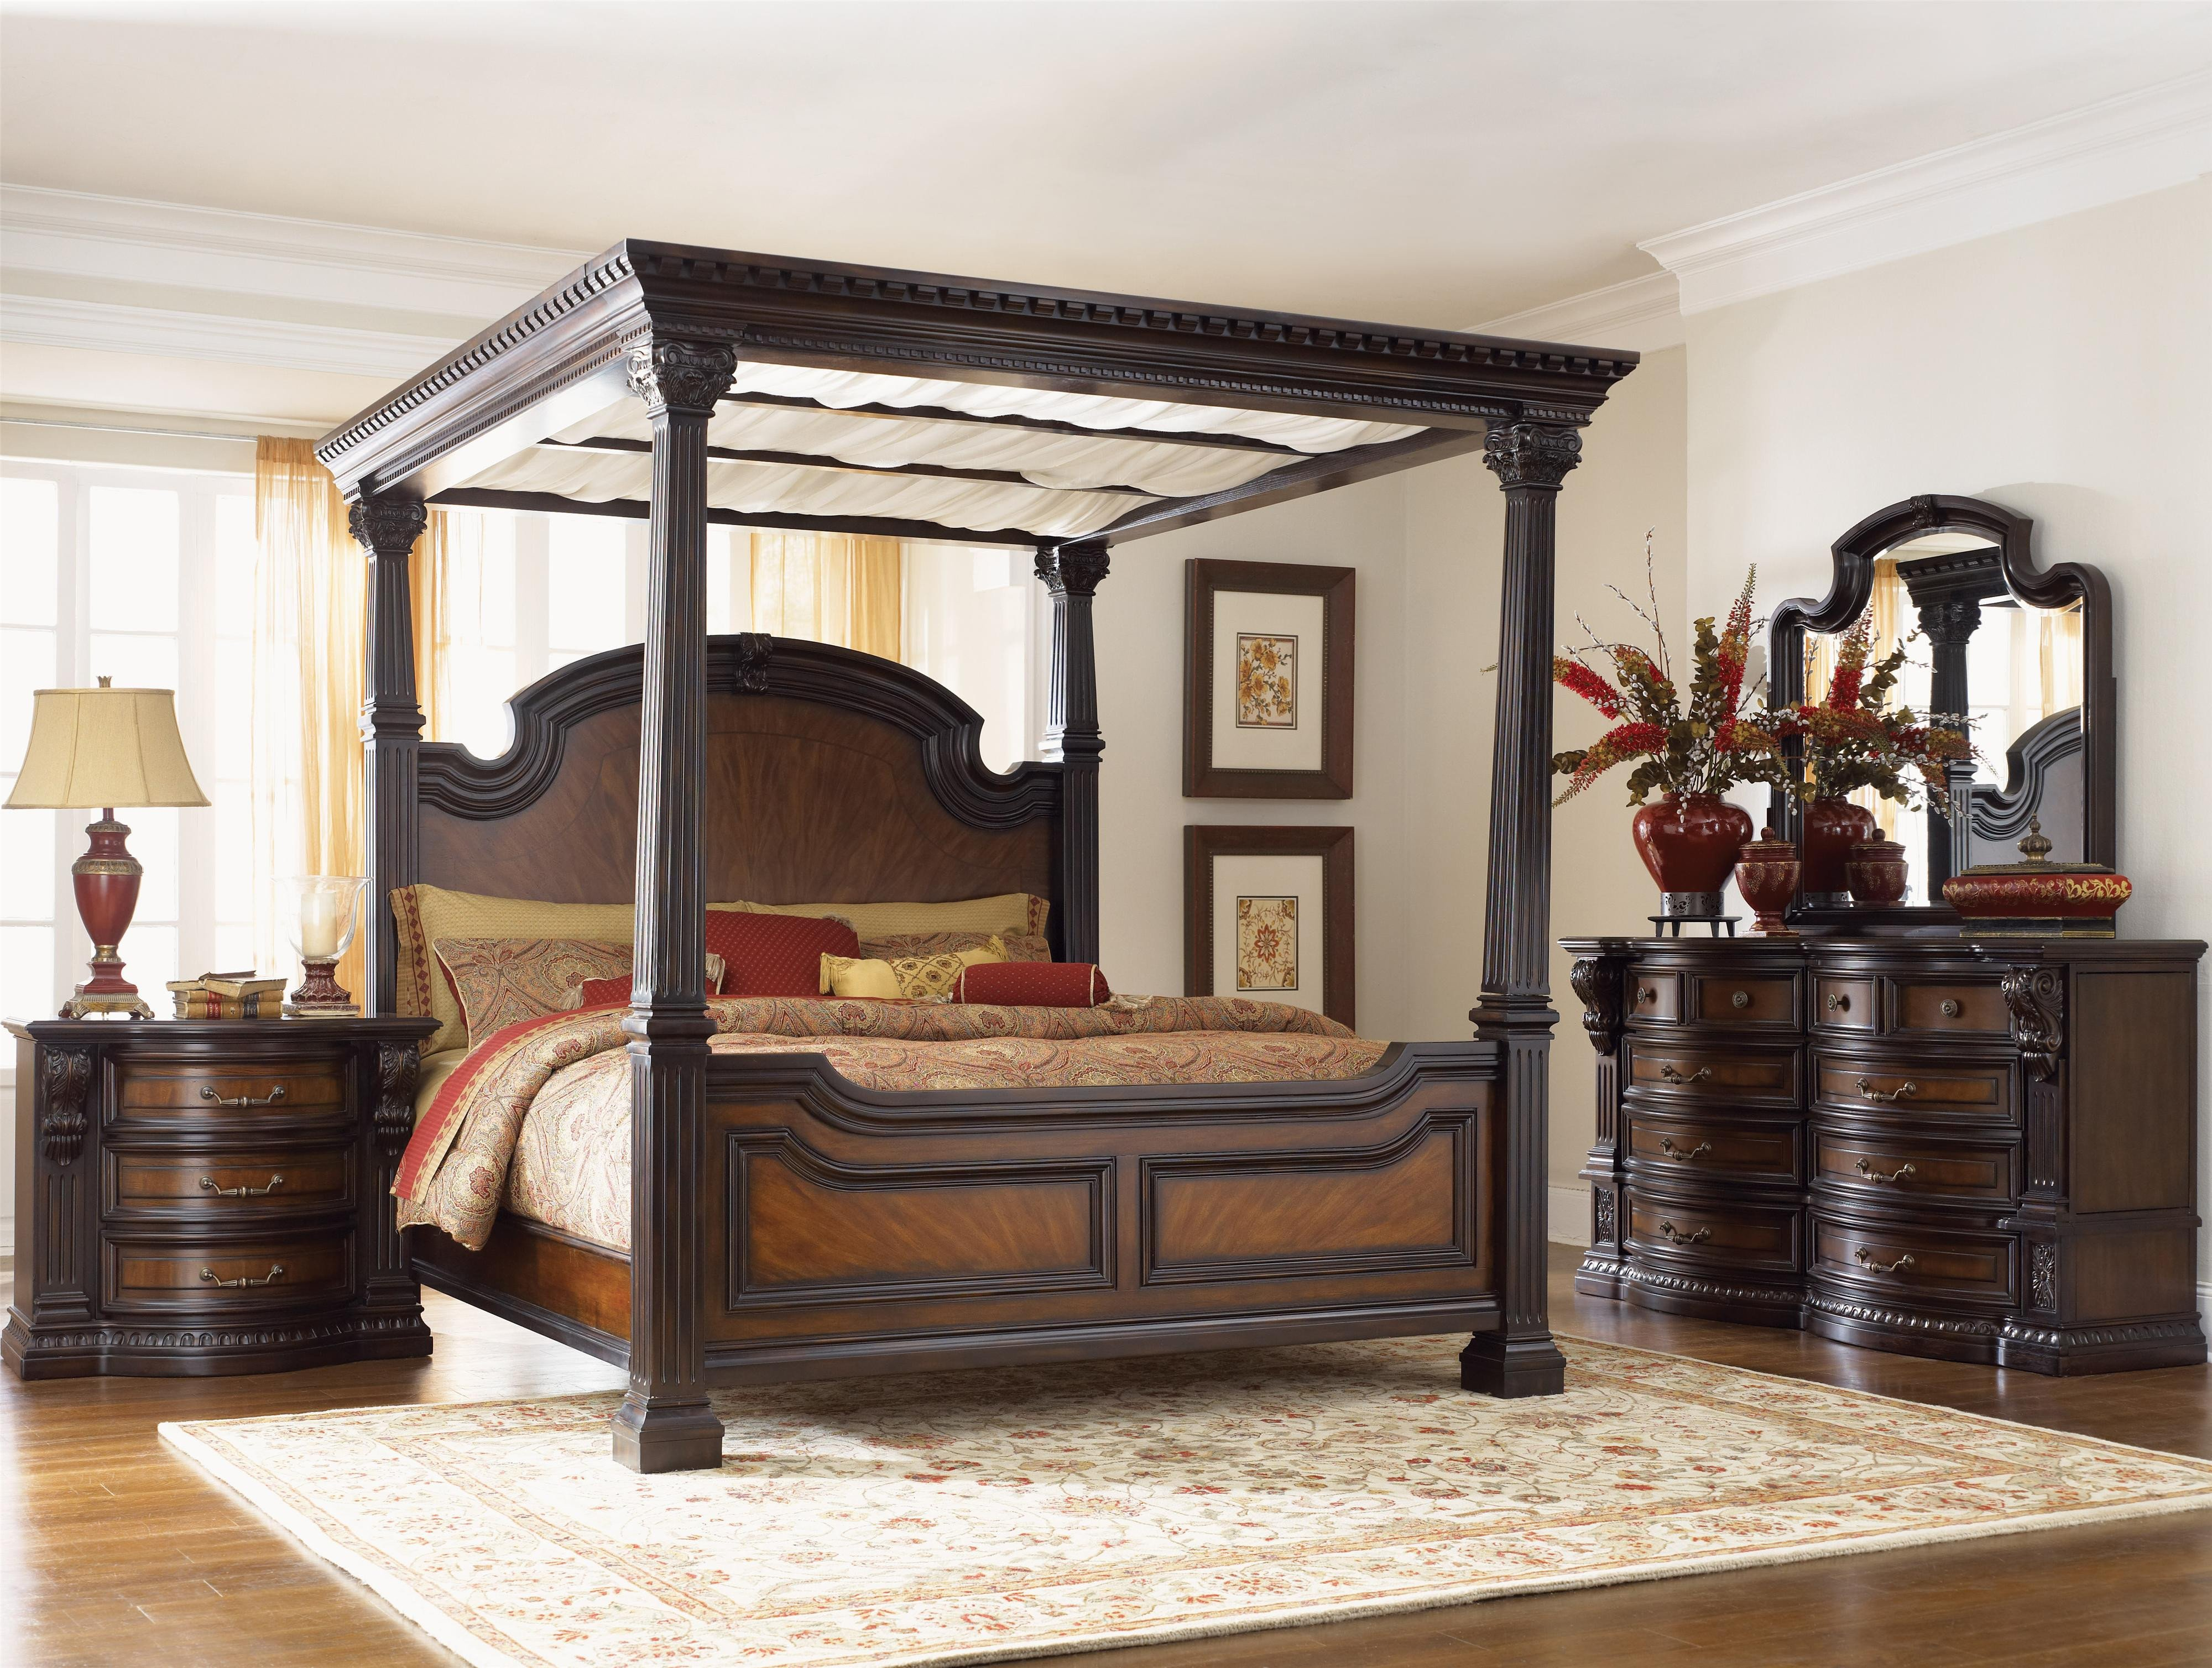 King Size Canopy Bedroom Set Best Of Grand Estates 02 by Fairmont Designs Royal Furniture